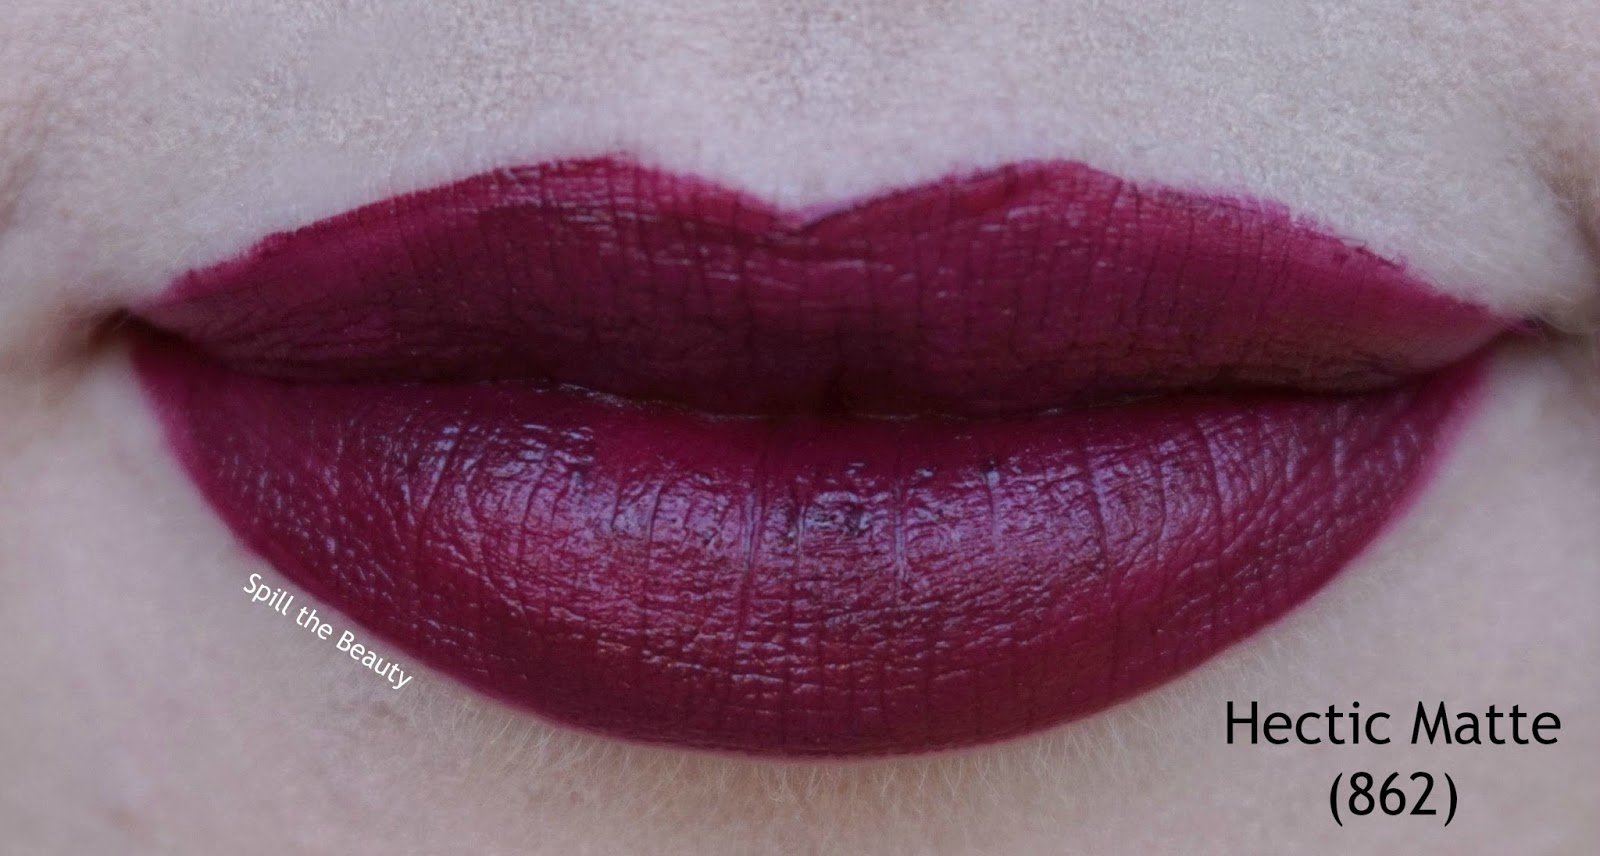 dior rouge dior liquid lipstick frenetic matte poison metal hectic matte shock matte swatches review lips - hectic matte